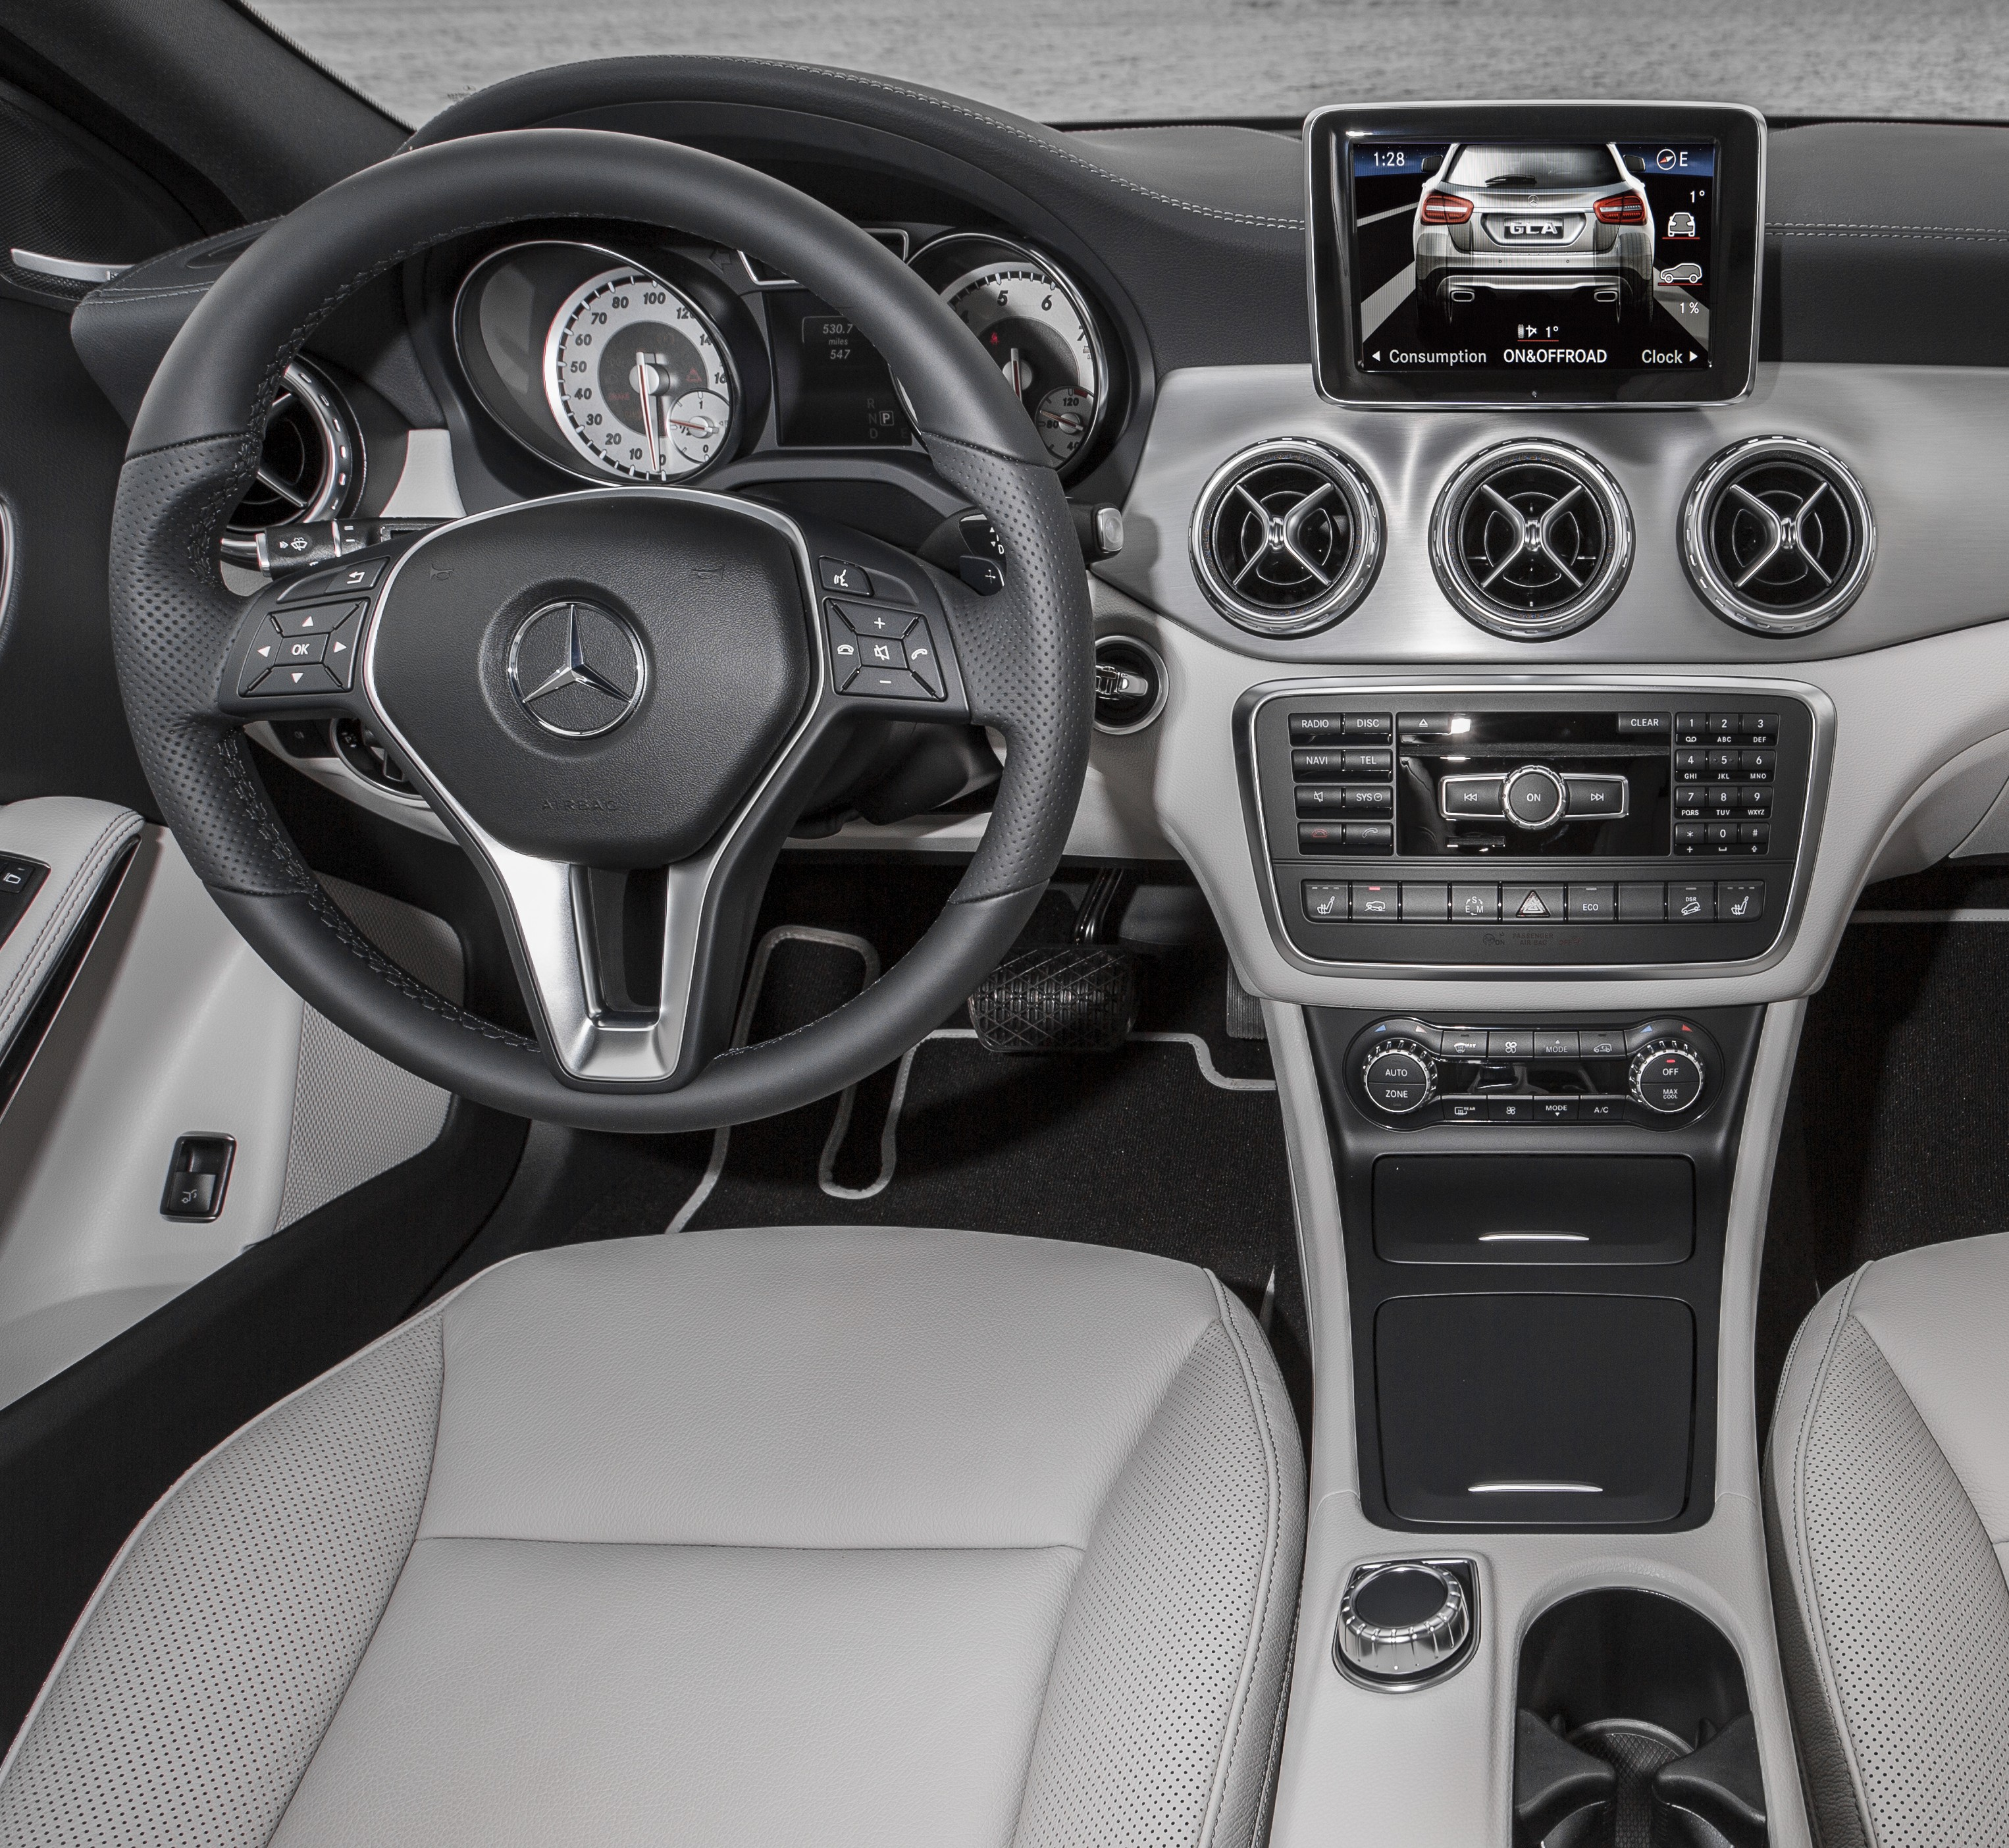 Mercedes-Benz GLA250 Interior